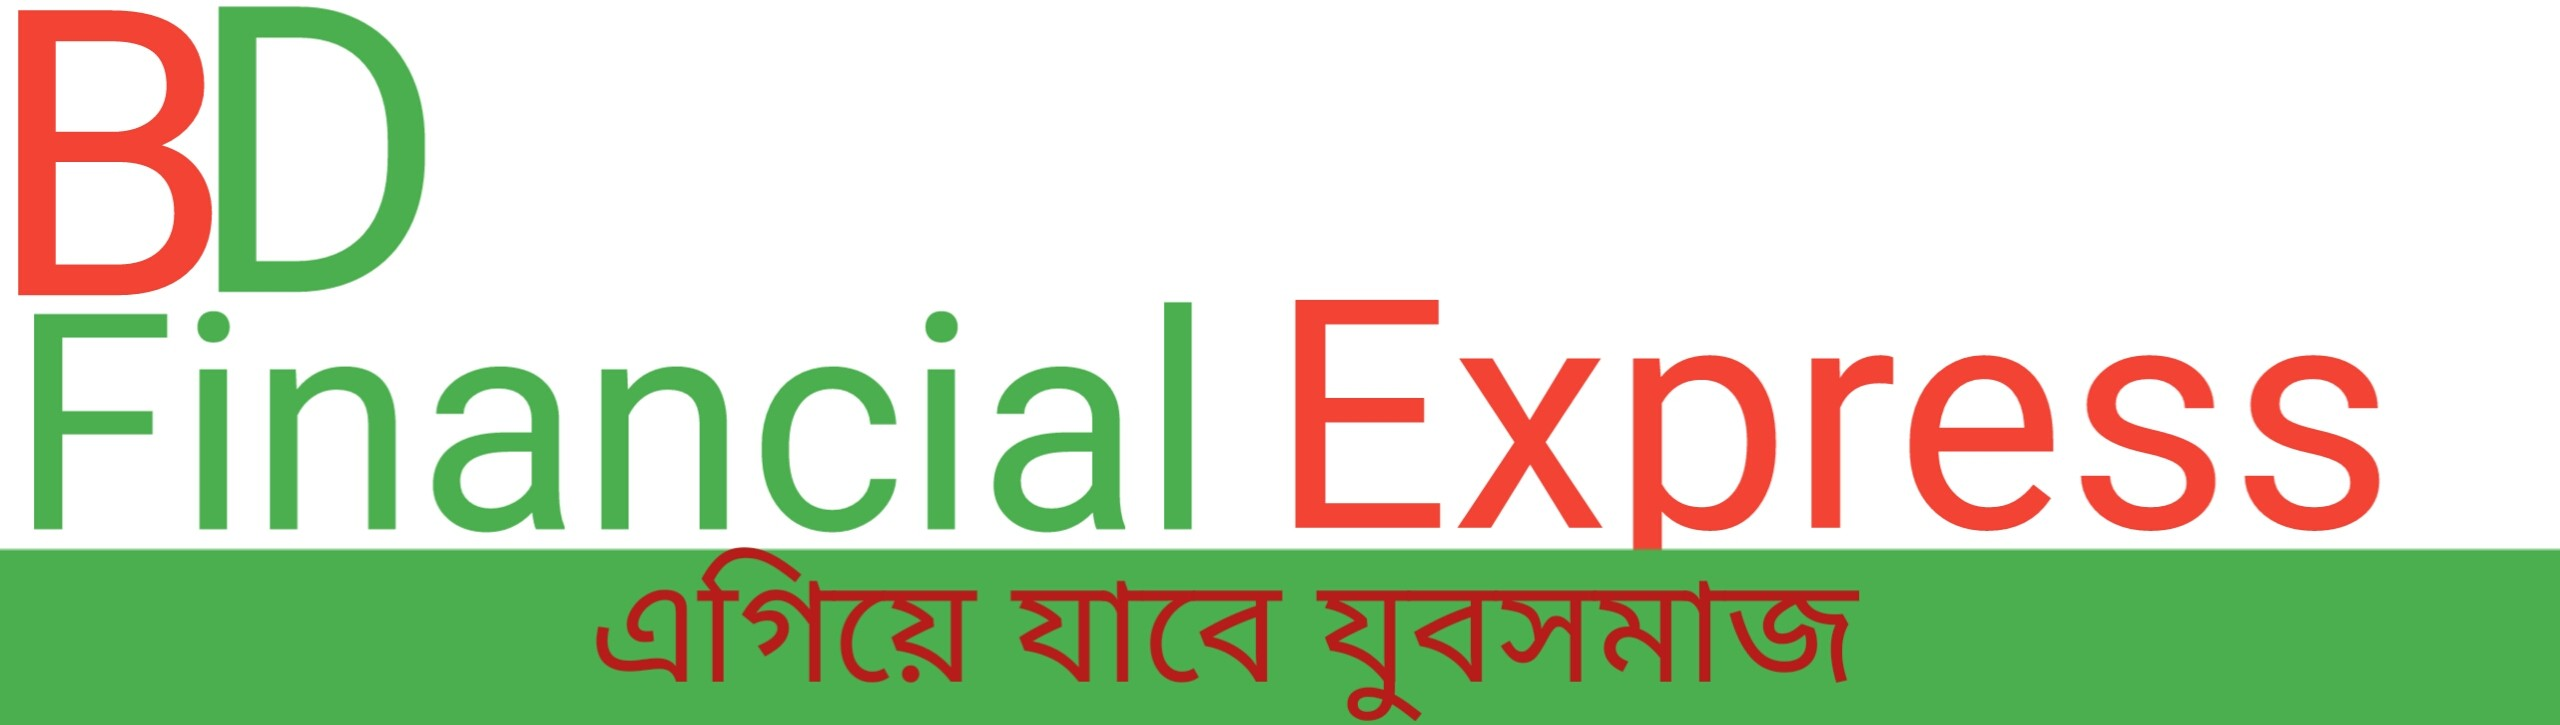 BD Financial Express